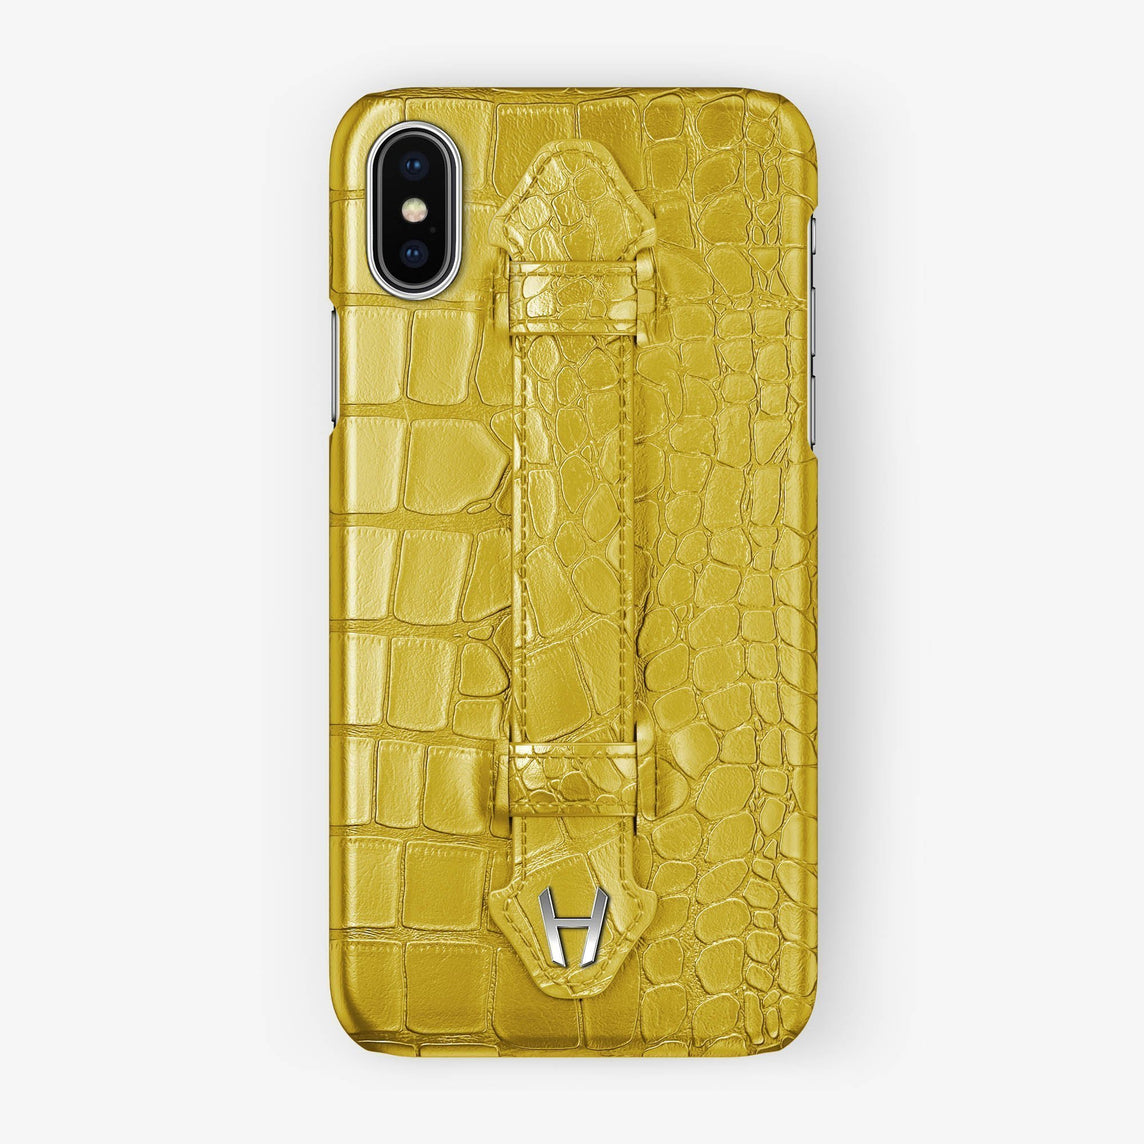 Yellow Alligator iPhone Finger Case for iPhone XS Max finishing stainless steel - Hadoro Luxury Cases